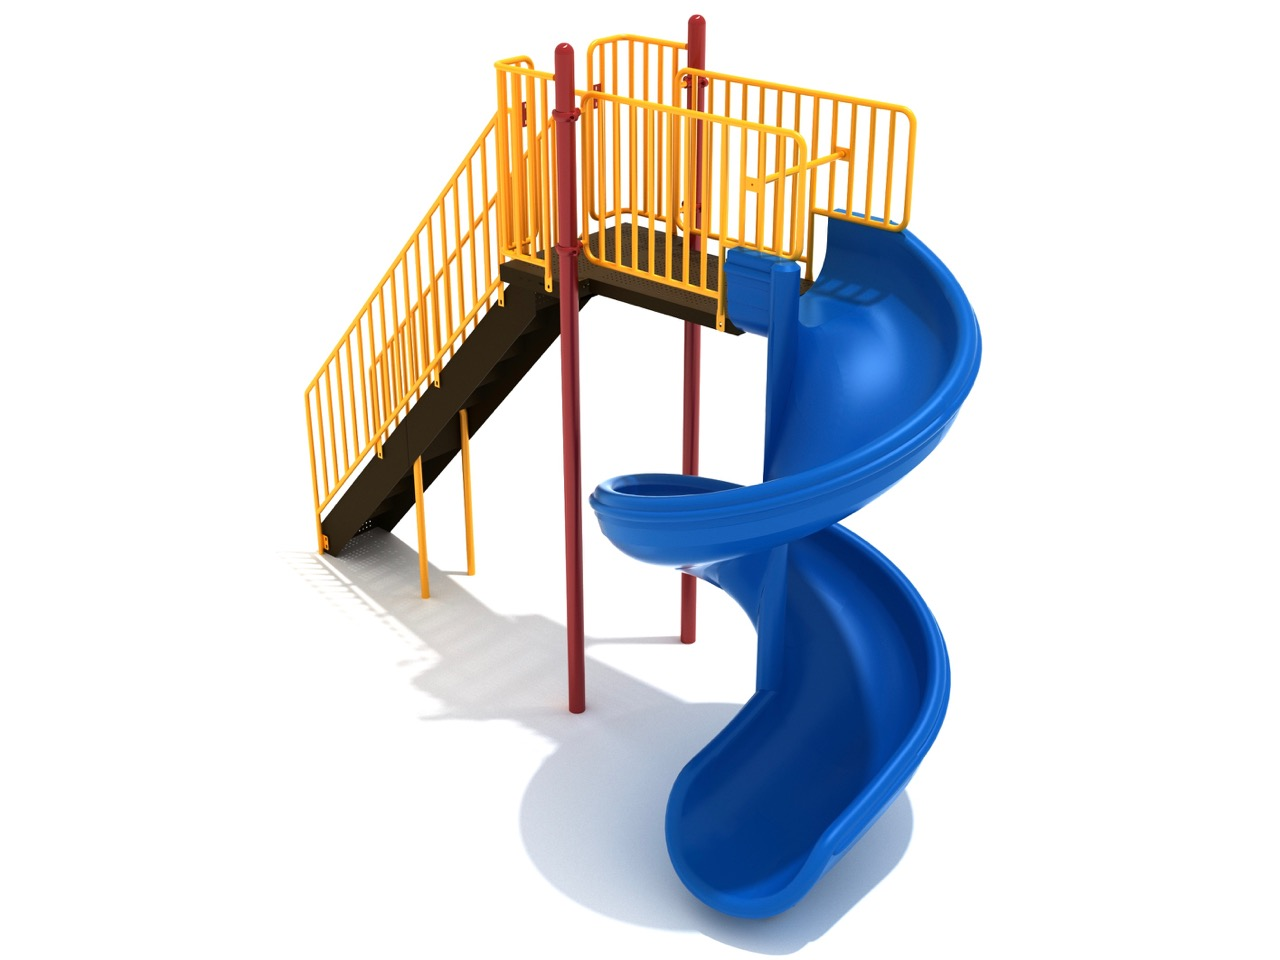 8 foot open spiral slide free standing aaa state of play